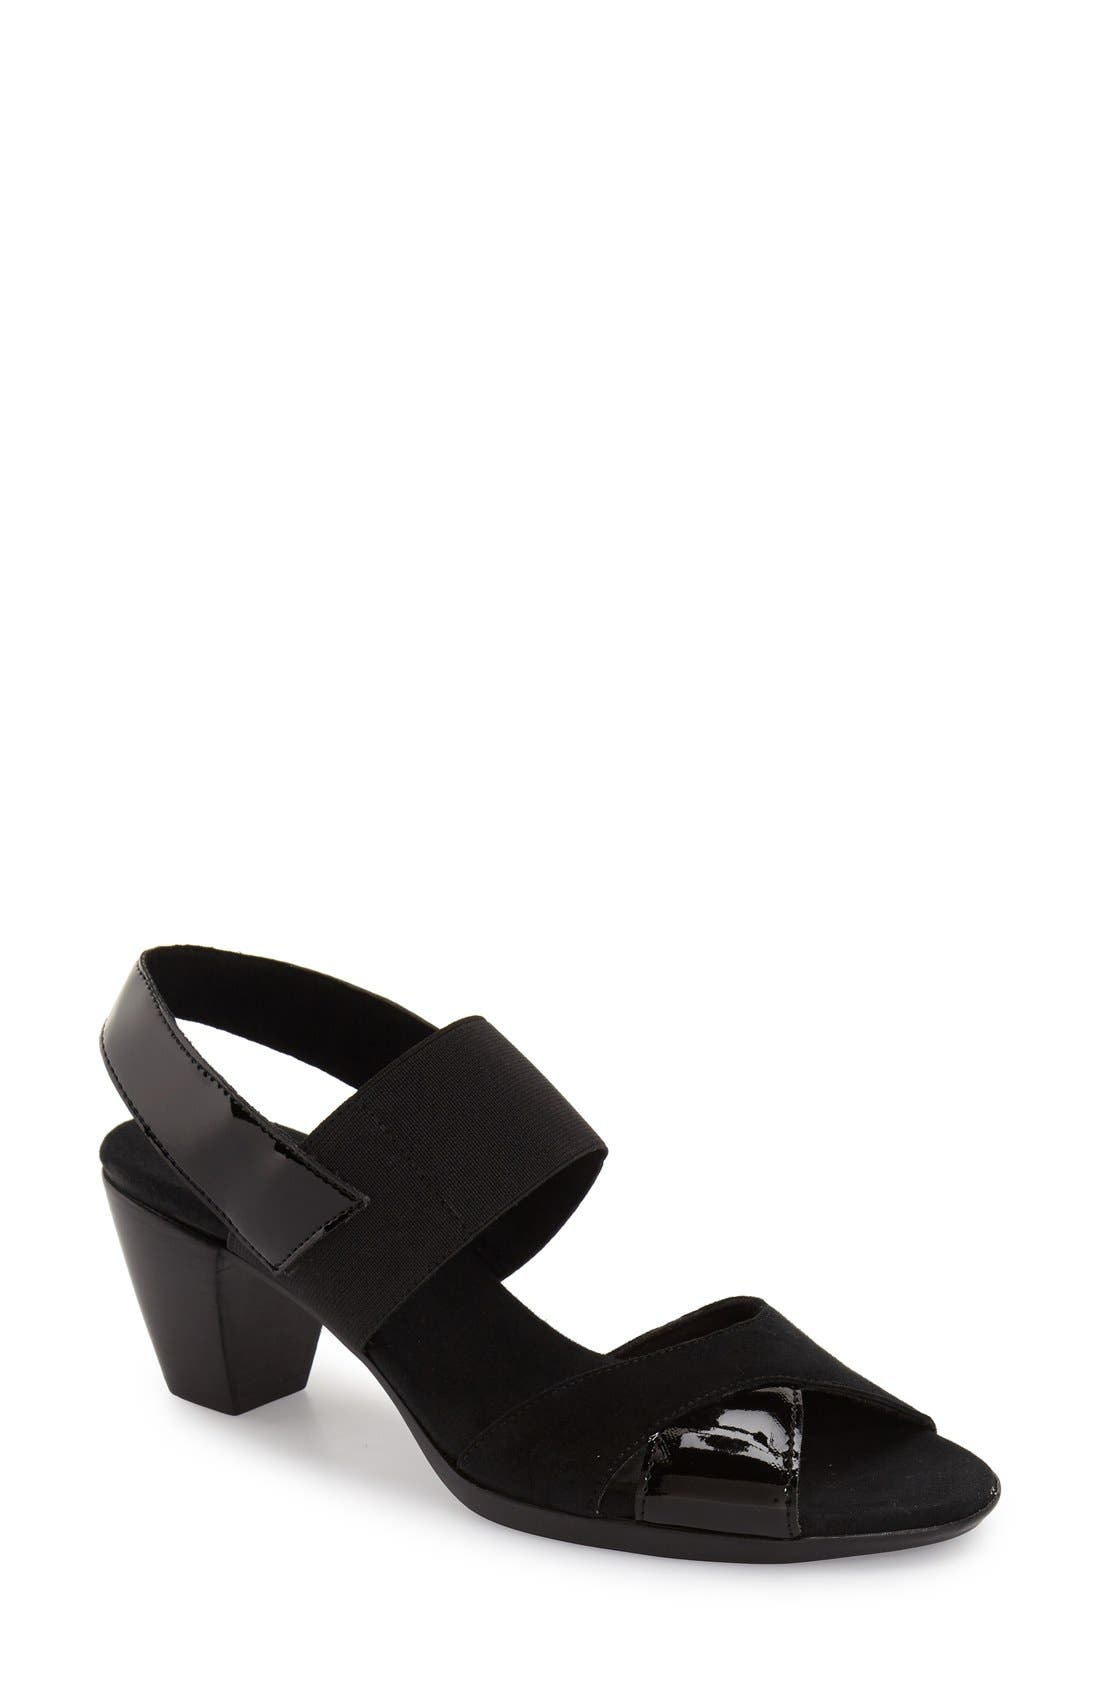 MUNRO Darling Mixed Finish Slingback Sandal, Main, color, BLACK COMBO